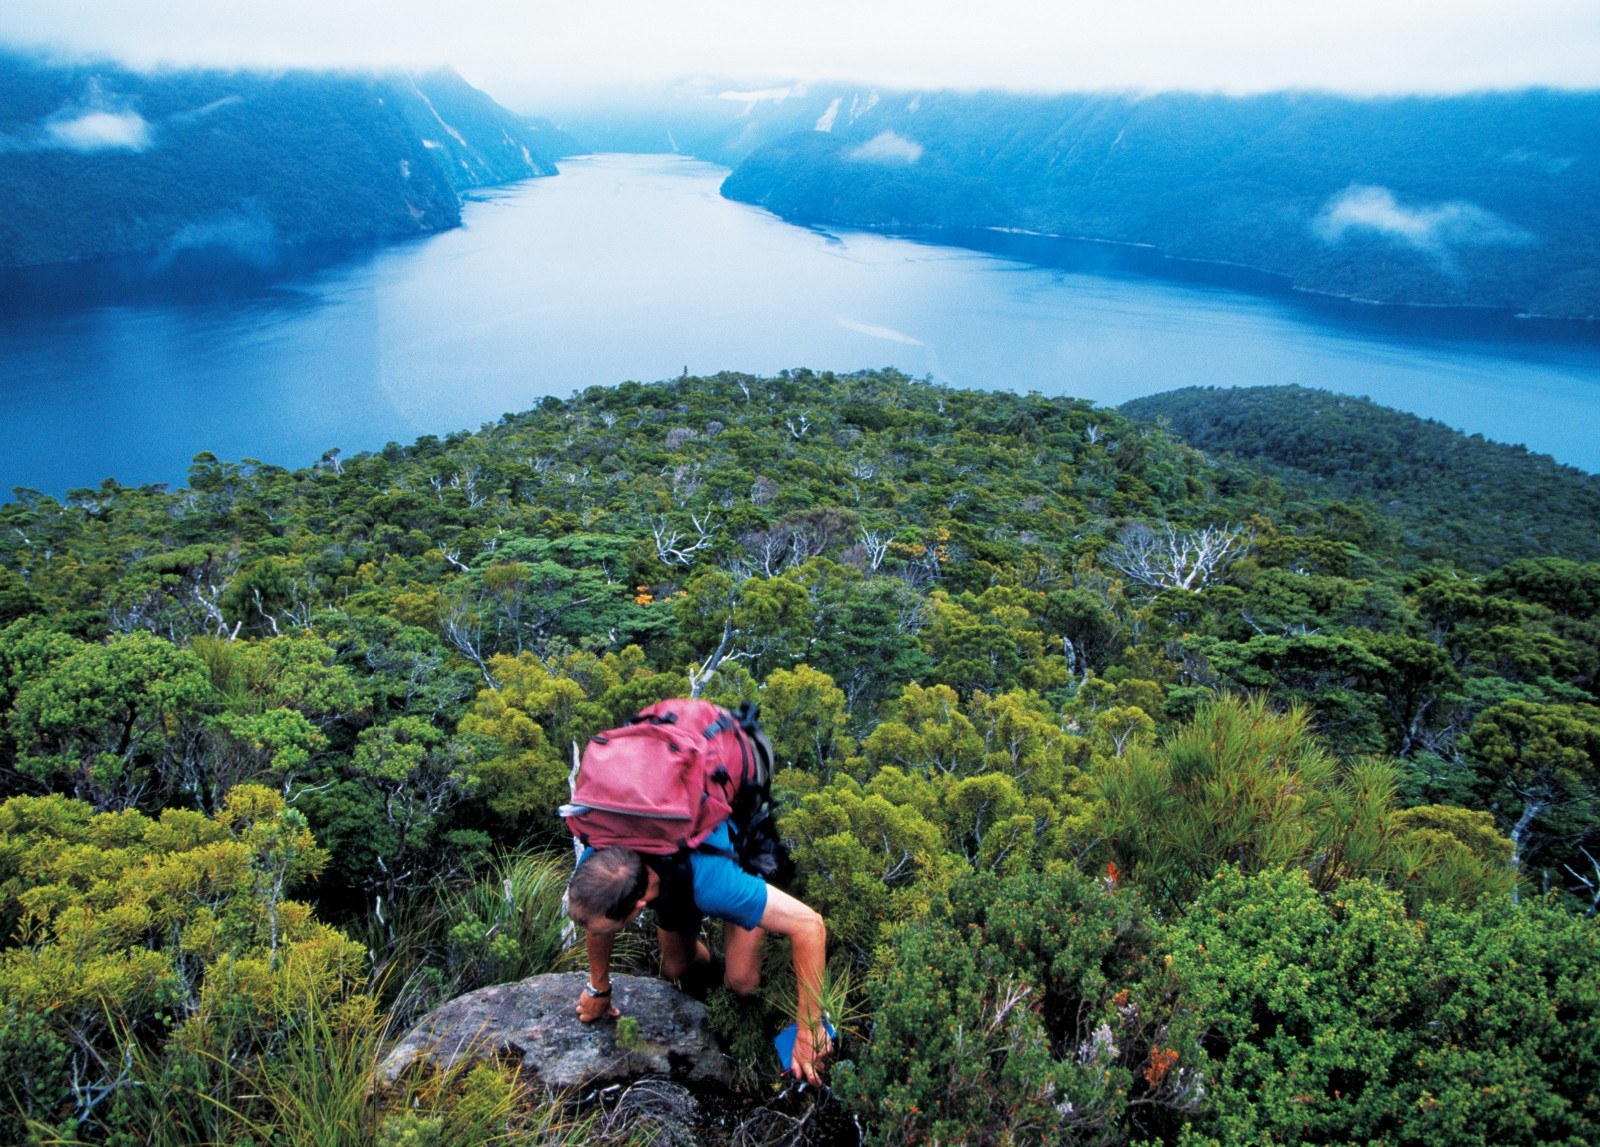 Whether high and rugged like Secretary Island or low and smaller like Chalky Island, Fiordland's islands are again attracting interest as possible refuges for endangered wildlife—once existing pests are removed.